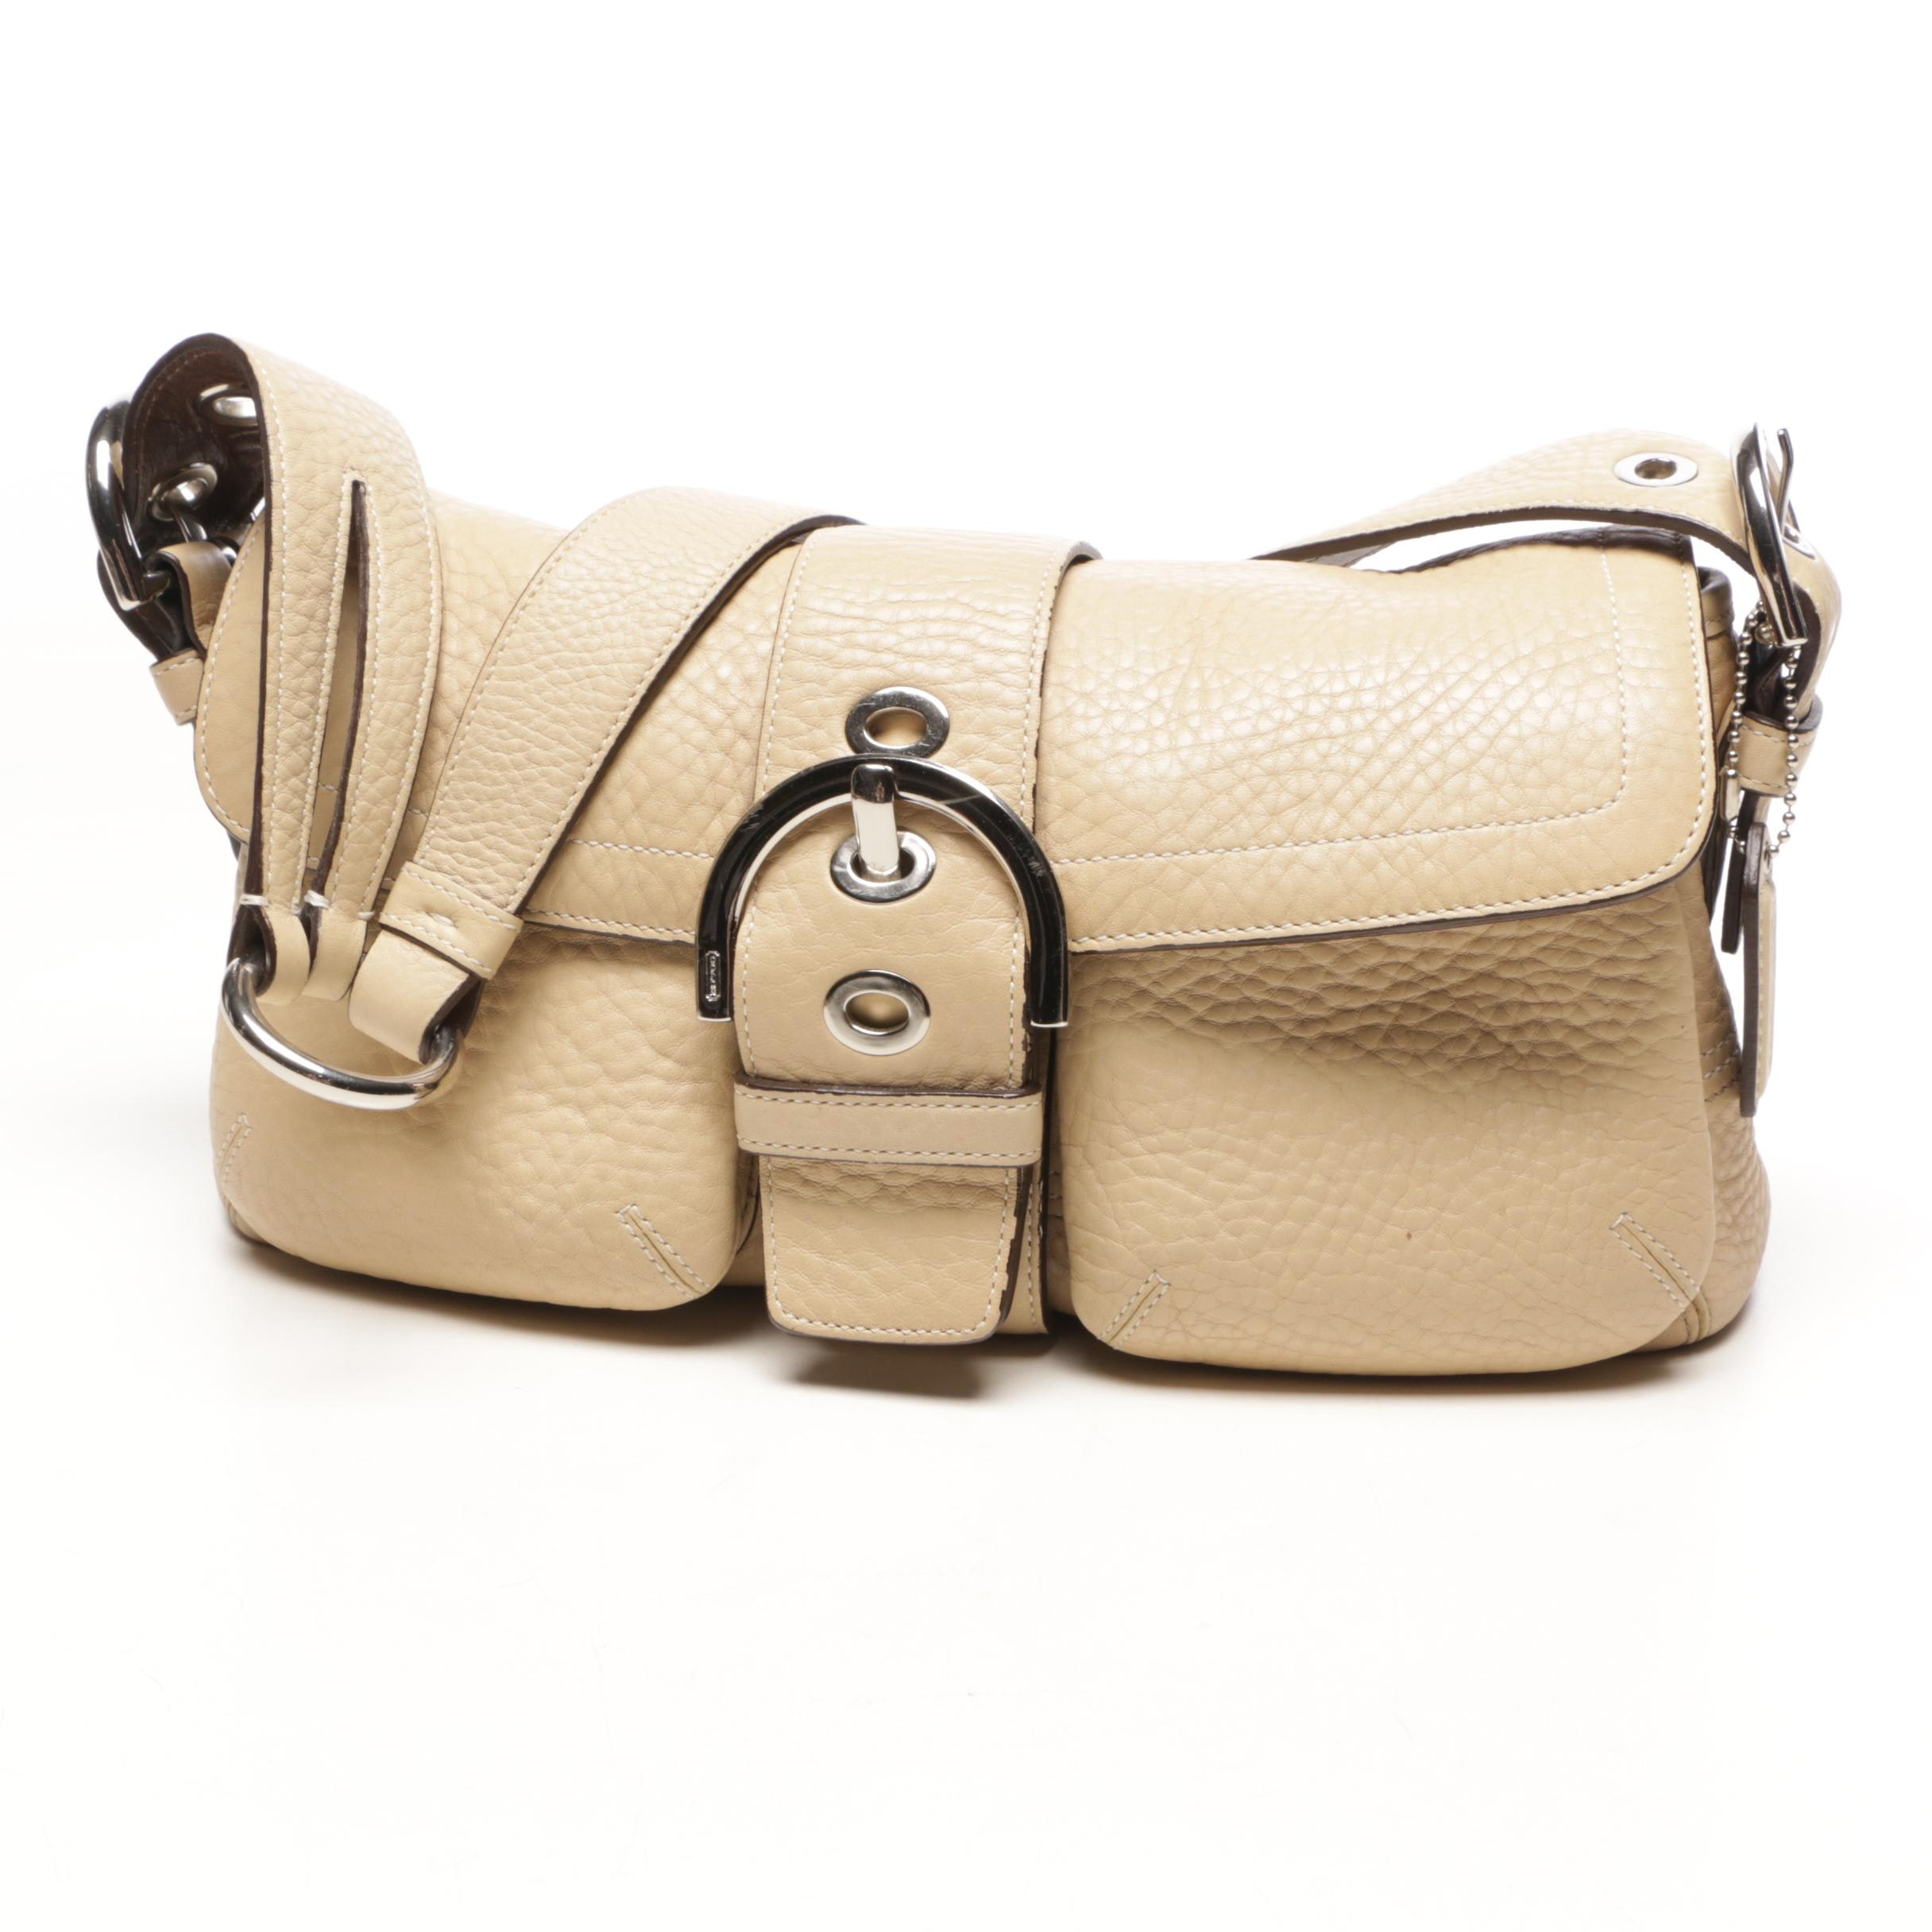 Coach Beige Leather Soho Buckle Flap Shoulder Bag